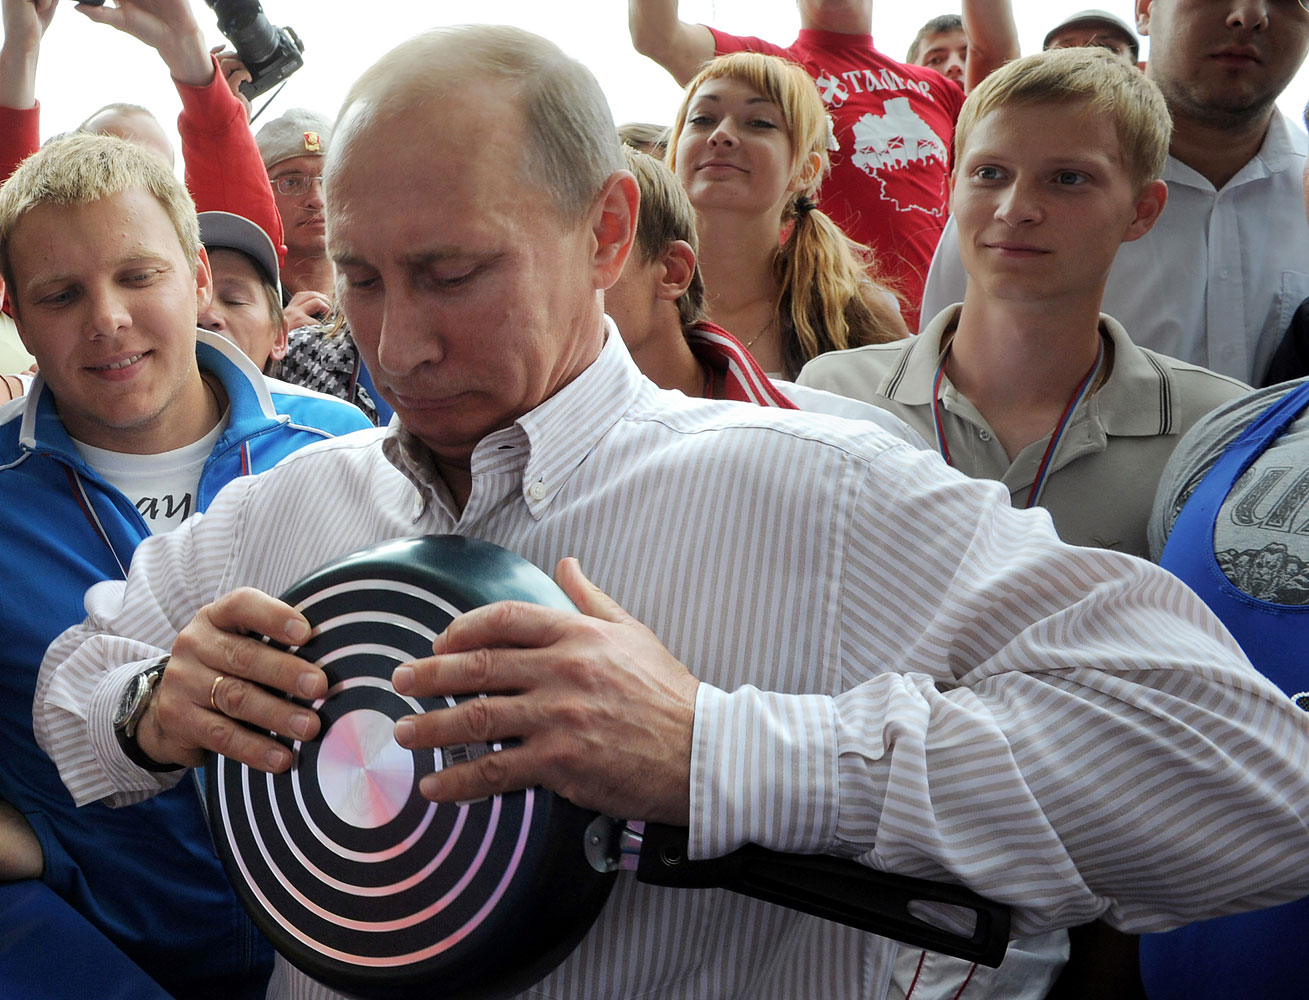 As pro-Kremlin youth activists look on, Putin attempts to bend a pan during his visit to a summer camp run by the Nashi youth group at Lake Seliger in the central Tver region of Russia, Aug. 1, 2011.